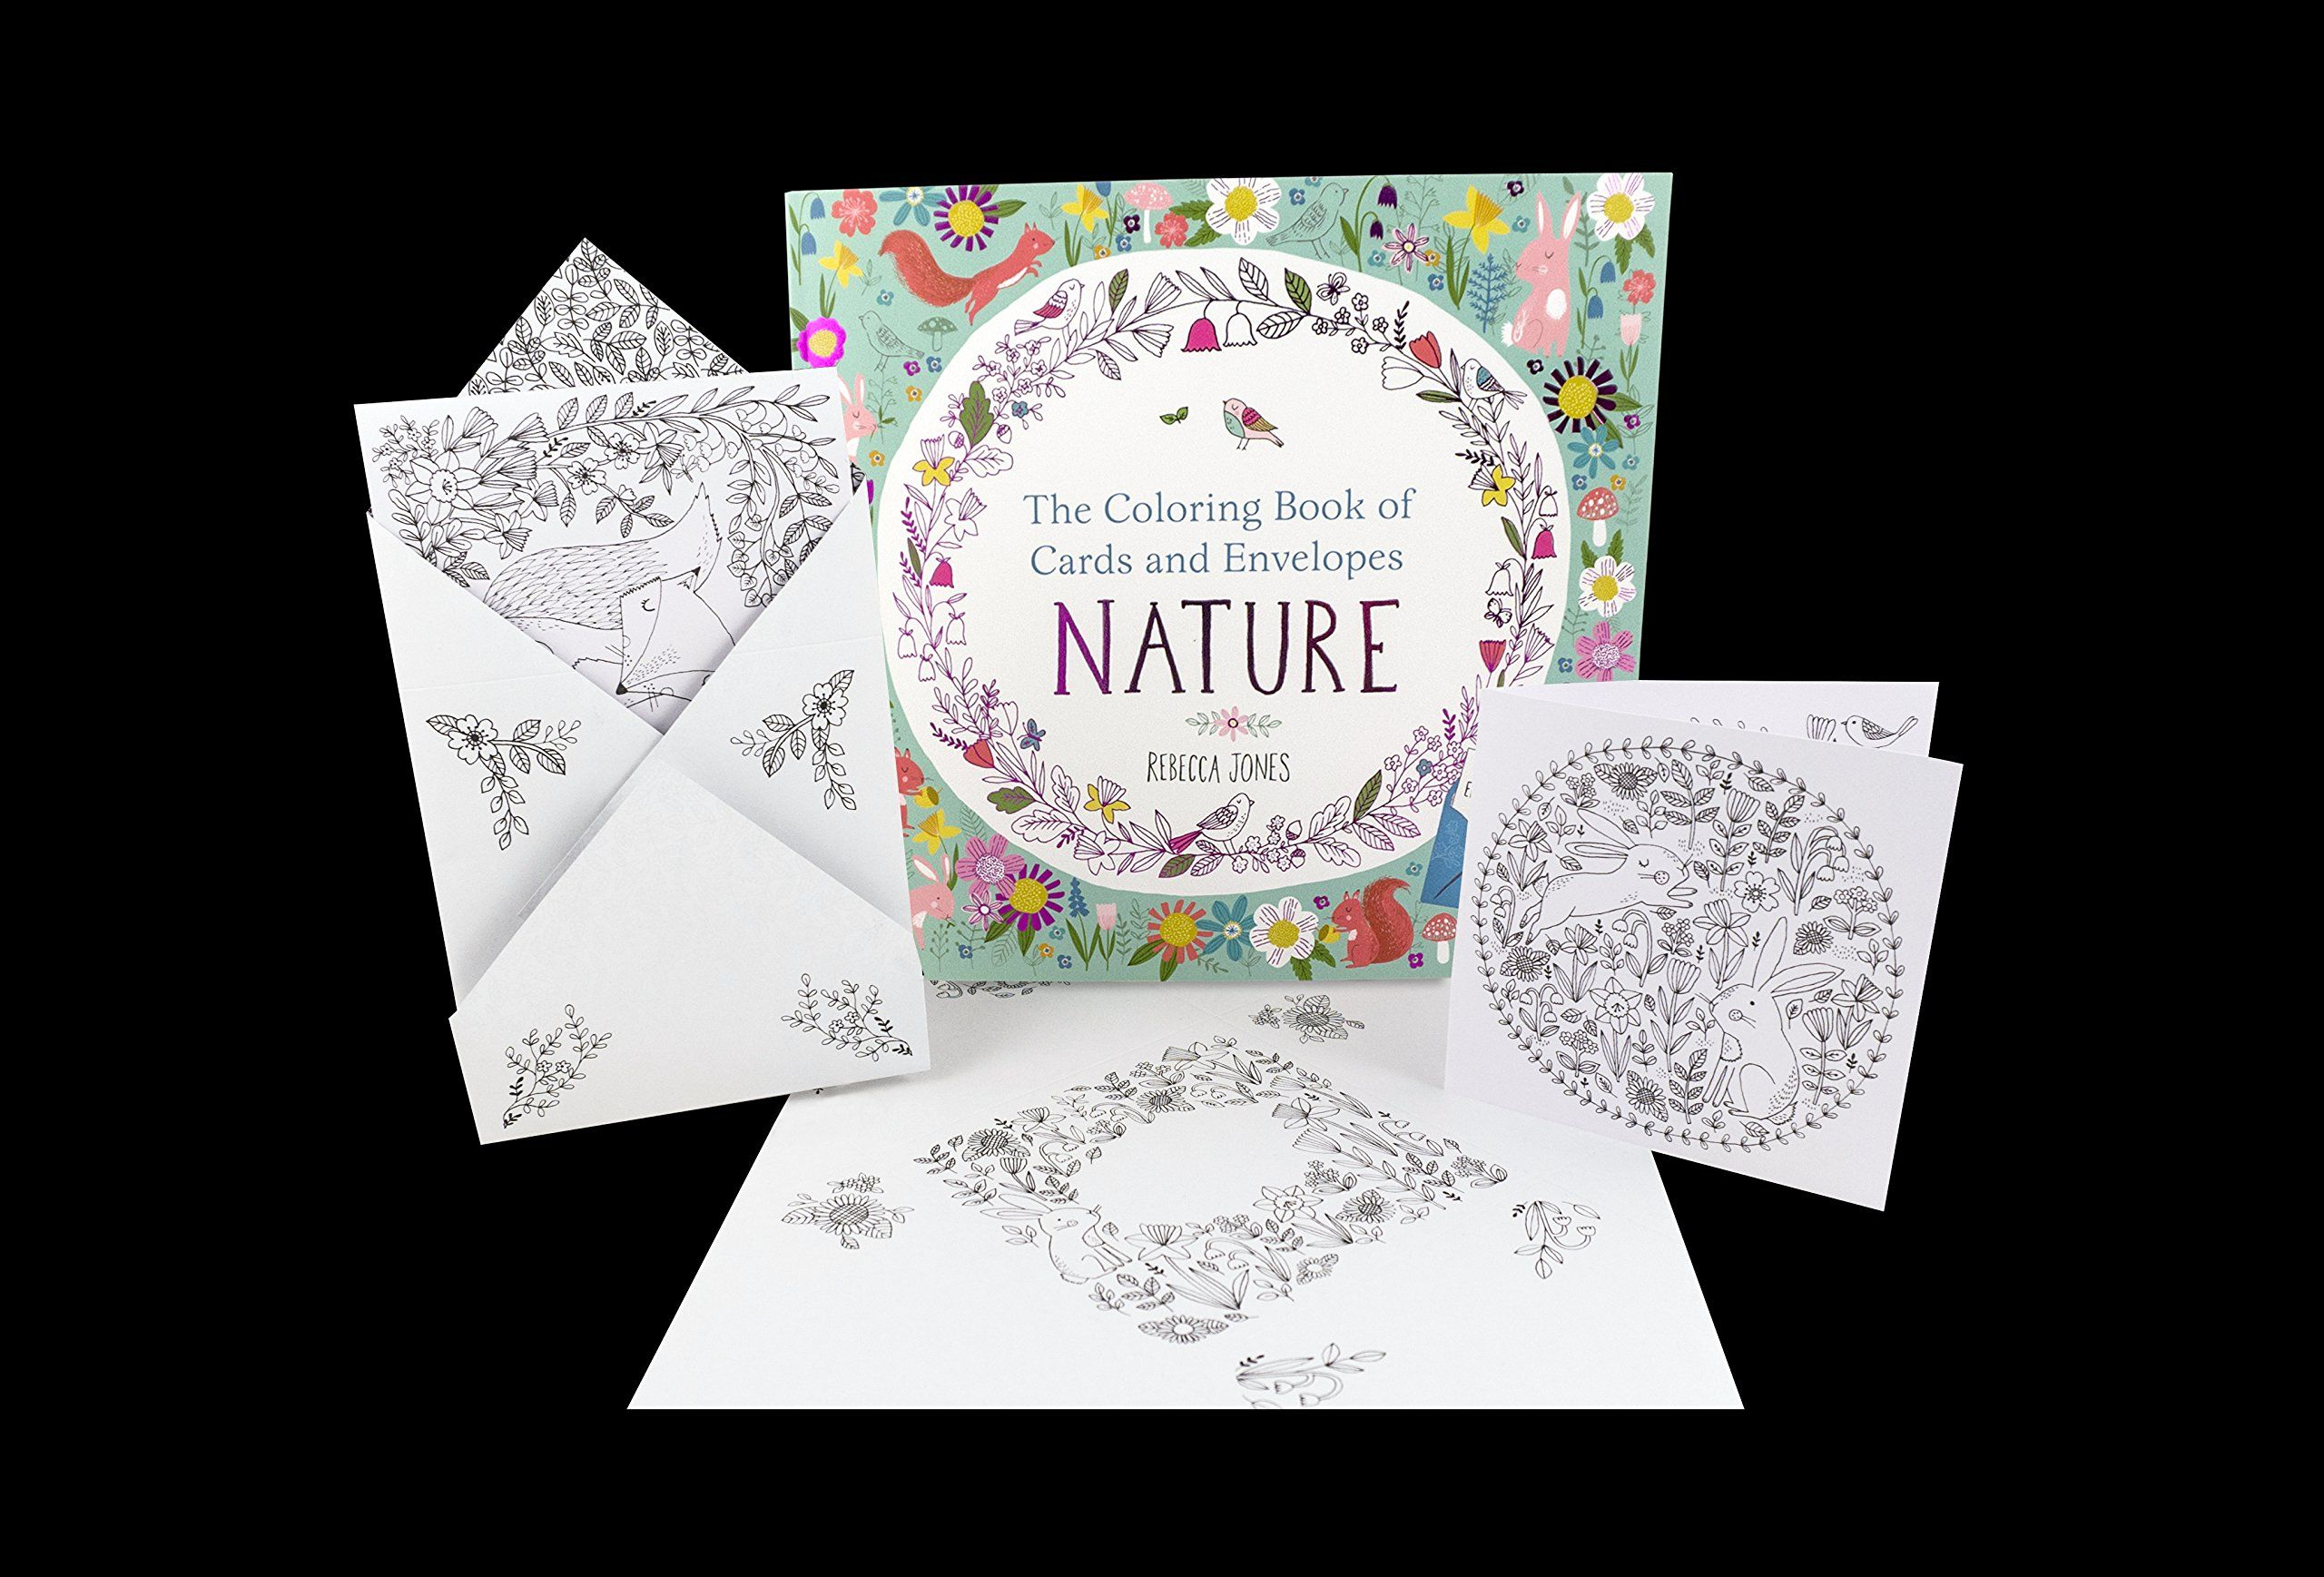 The Coloring Book Of Cards And Envelopes Nature Nosy Crow Rebecca Jones 9780763692452 Amazon Com Books Cards Envelopes Coloring Books Cards